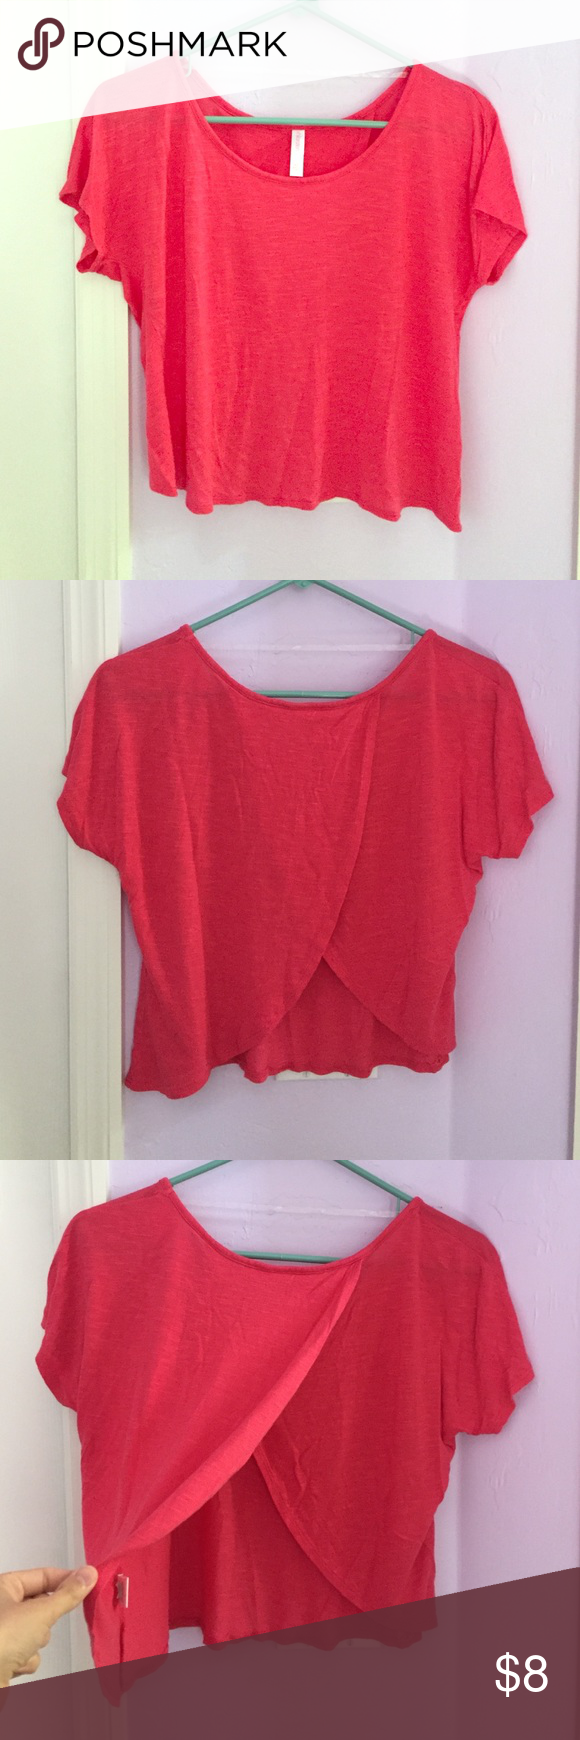 Xhilaration Crop Top Xhilaration Crop Top. Red / pink / coral color. Worn once. No defects. Back opening. Size XS. No trades, please. Price firm. Xhilaration Tops Crop Tops